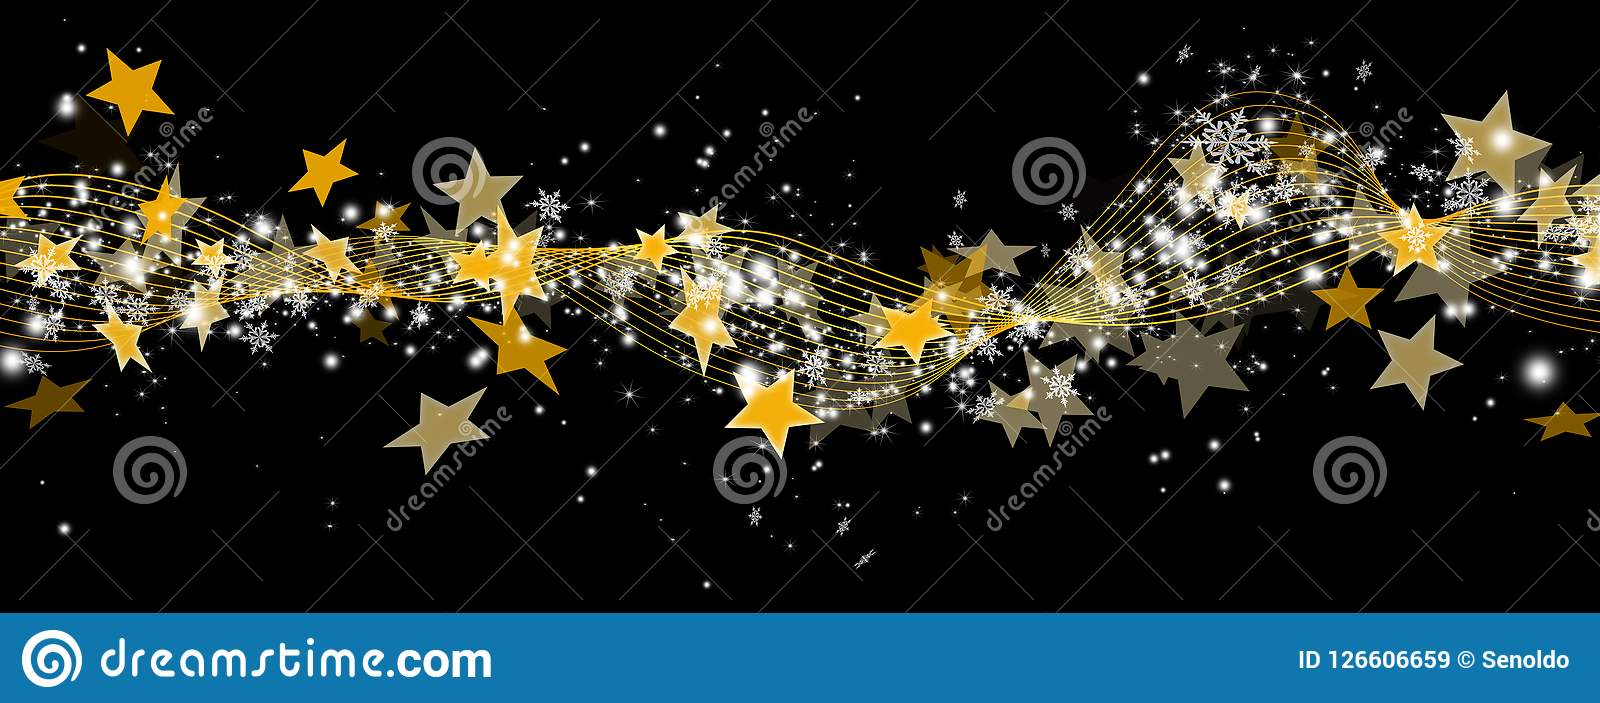 Abstract Panorama Banner with Golden Starlets and Particles